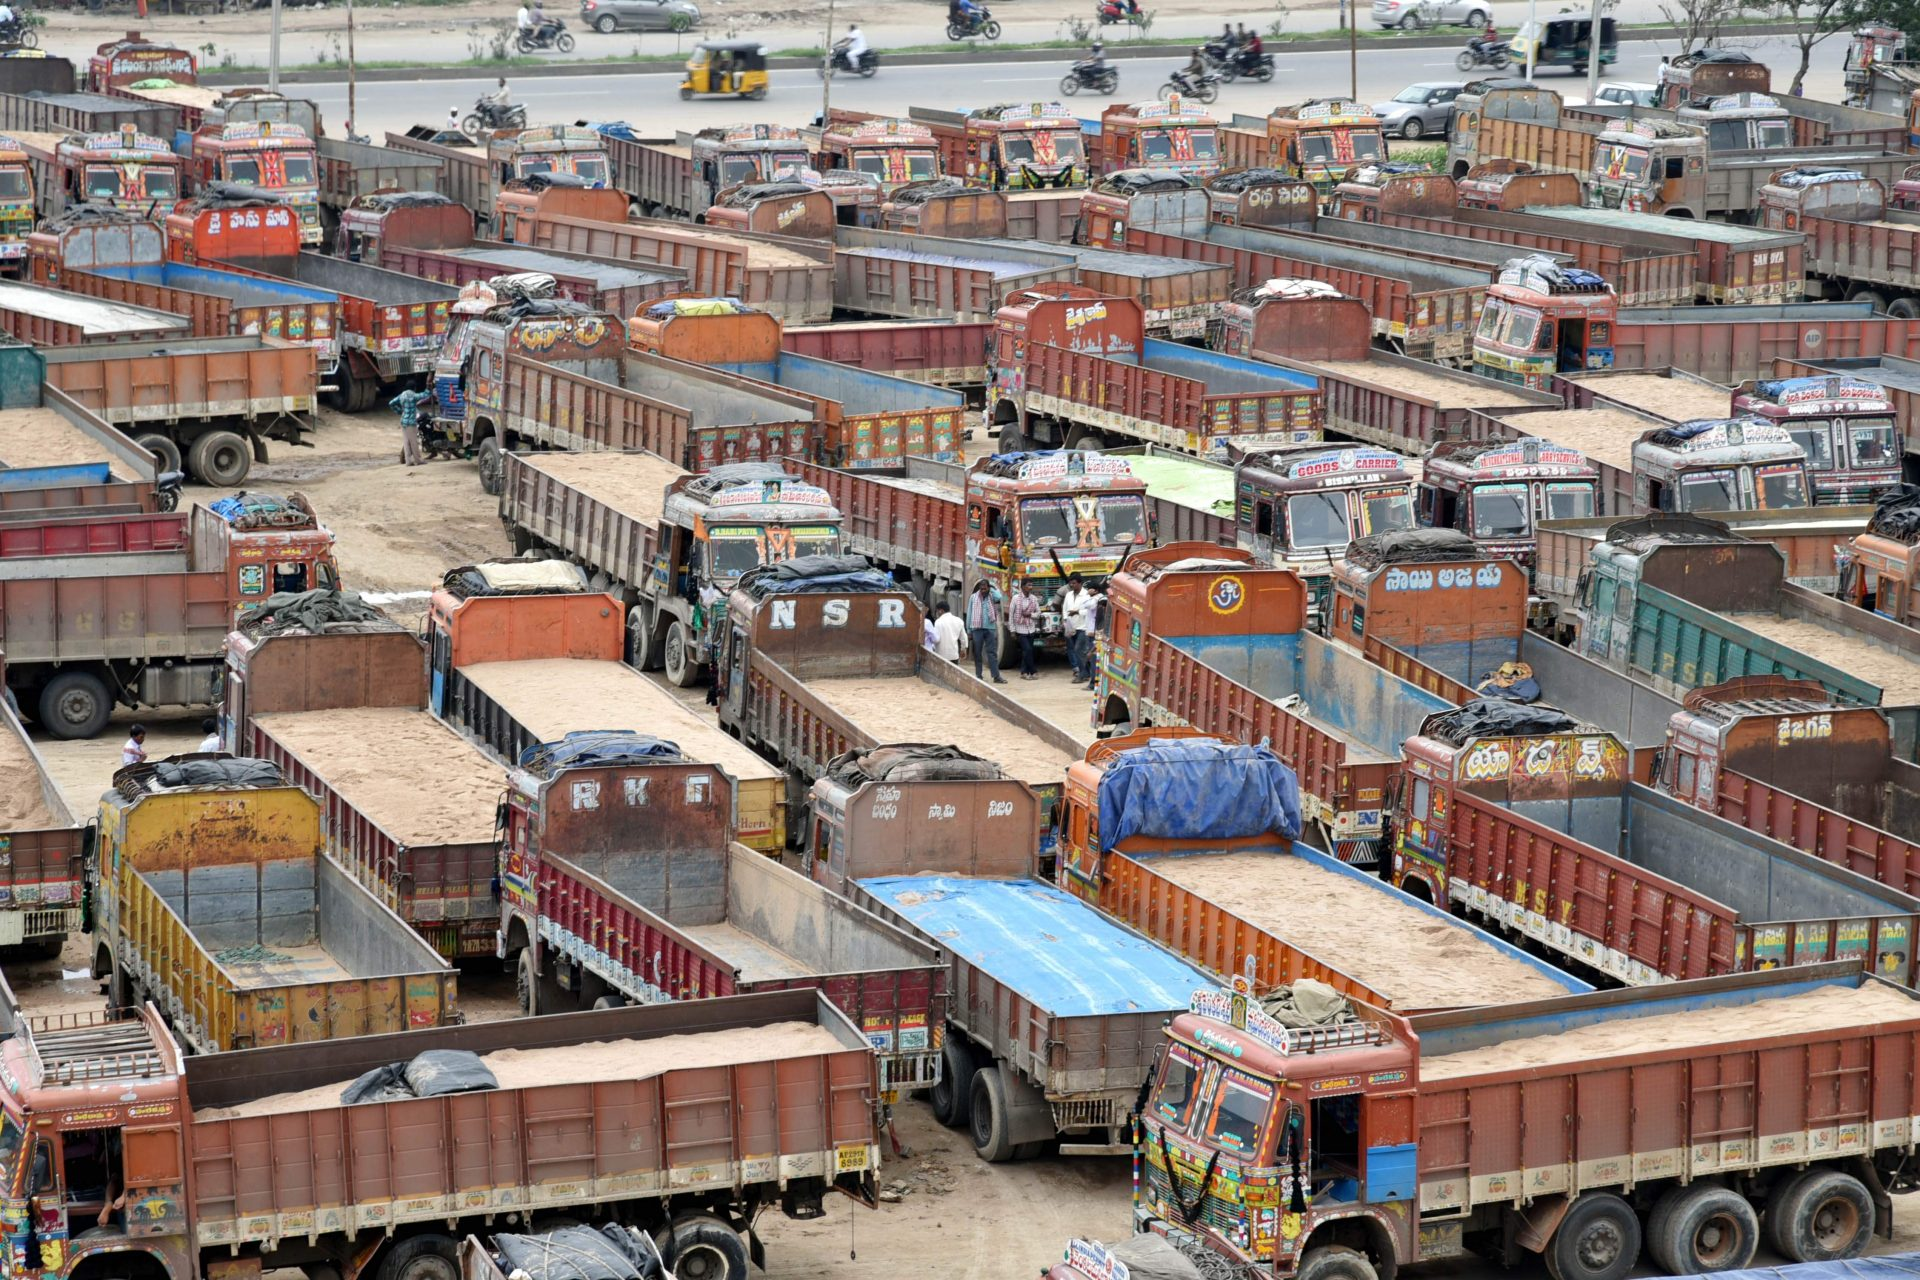 Trucks idle near Vanasthalipiram, Hyderabad, India during the July 2018 Trucker Strike. Photo Credit: R.Satish Babu, Express.